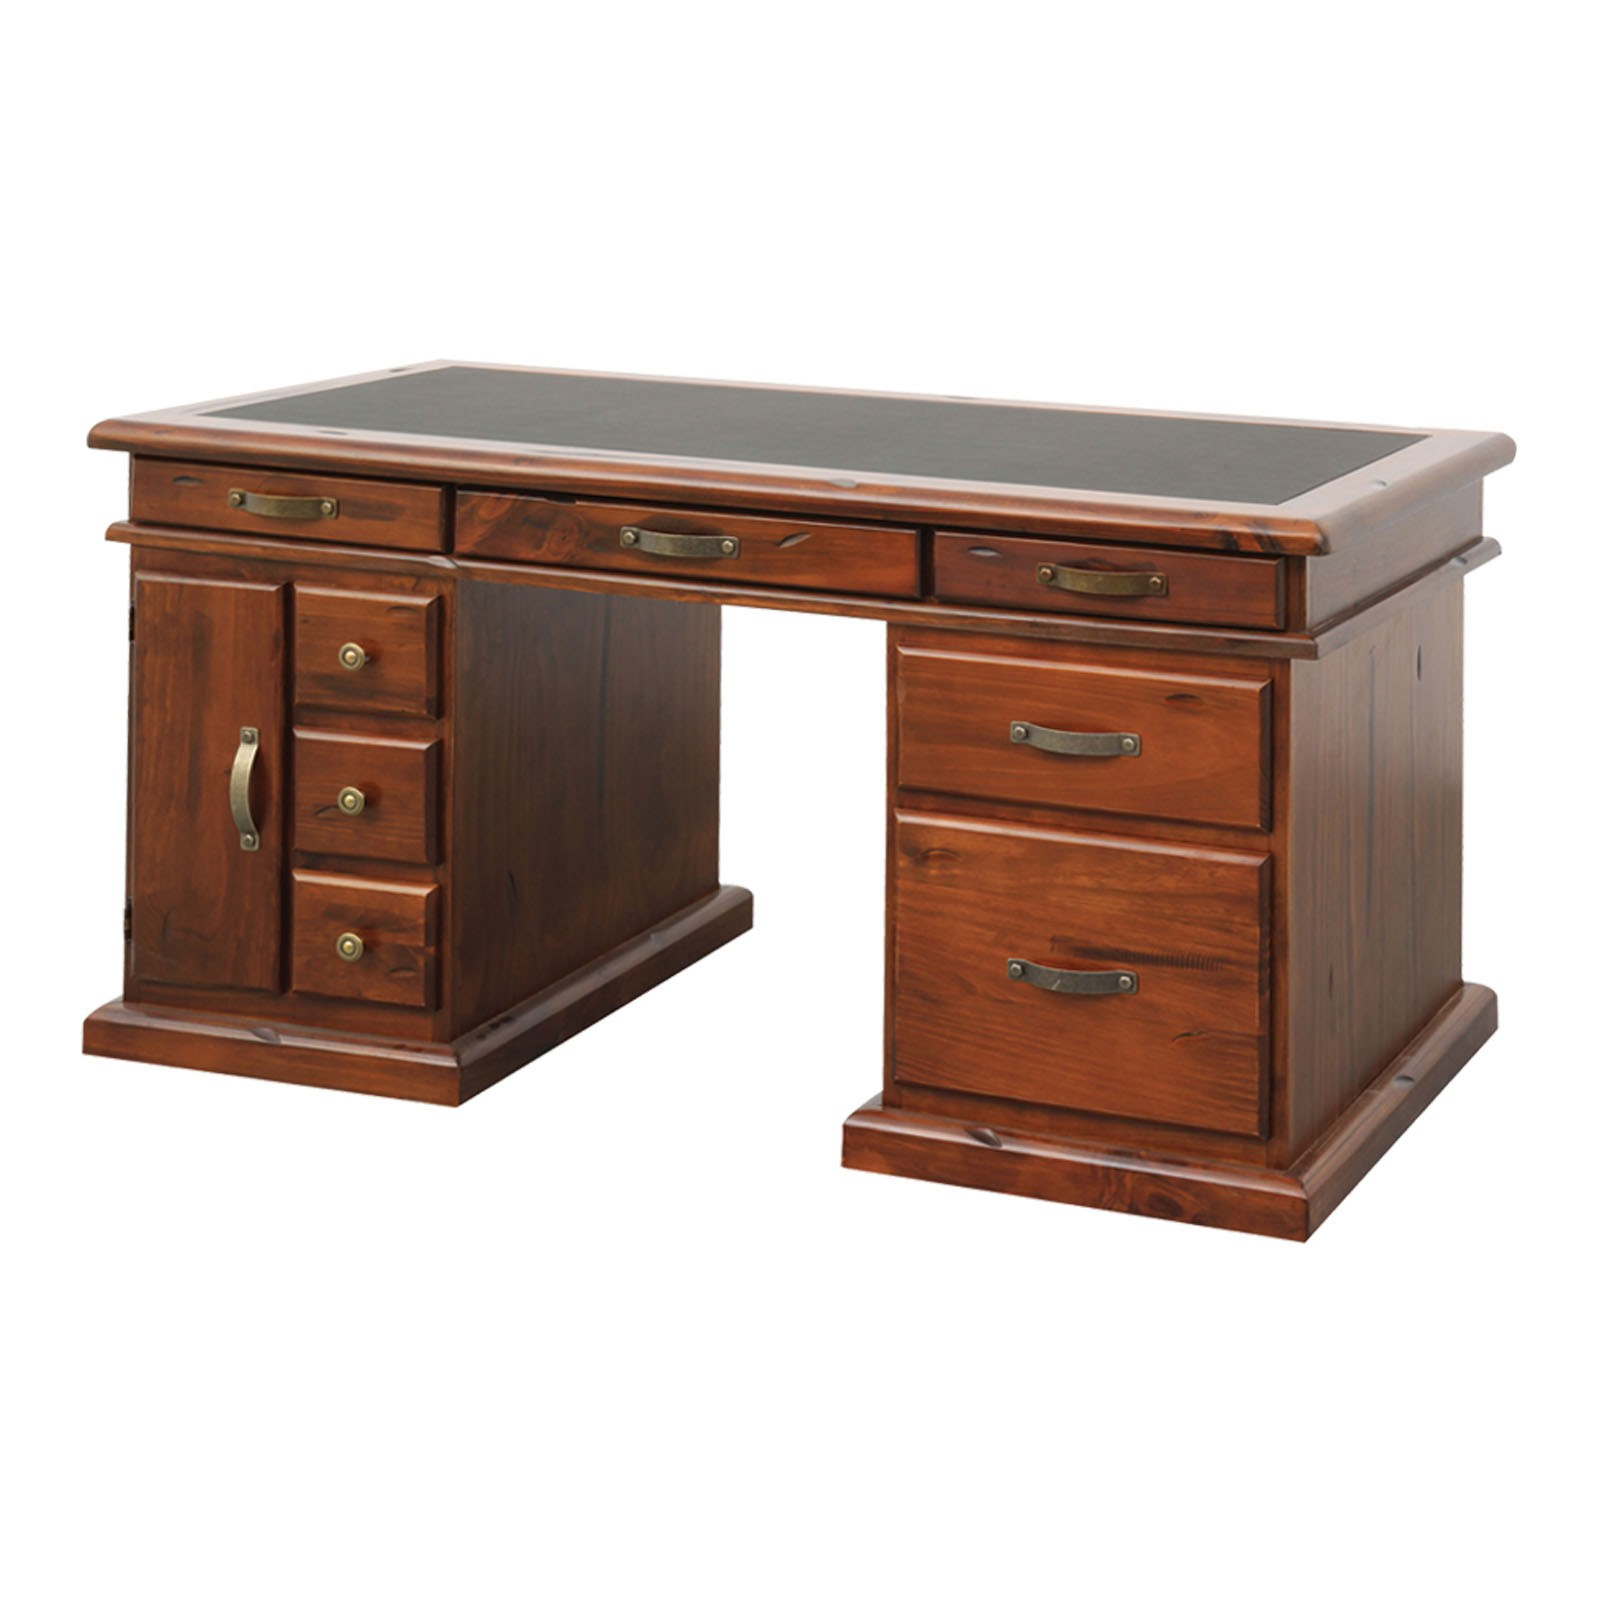 Spring New Zealand Pine Timber Desk